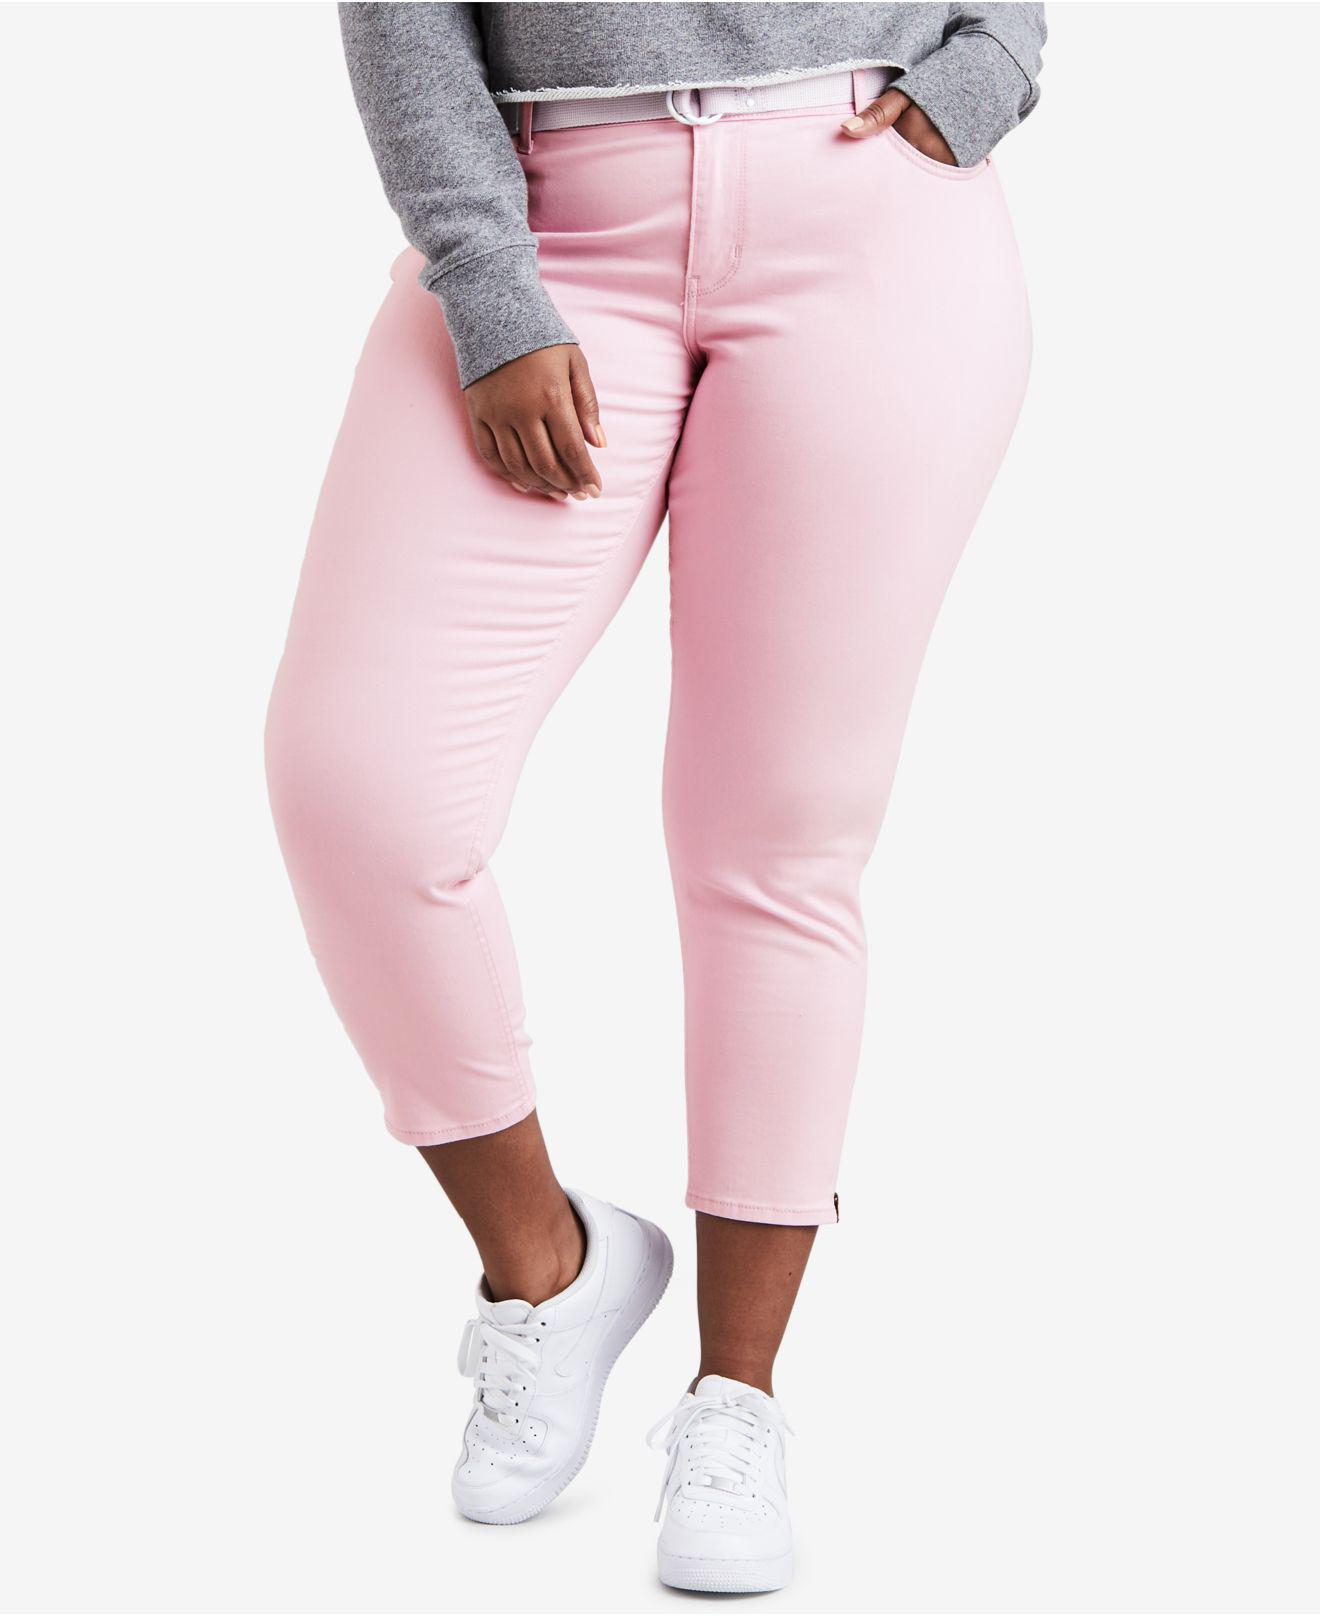 ff61e204745 Lyst - Levi s ® Plus Size 711 Cotton Skinny Ankle Jeans in Pink